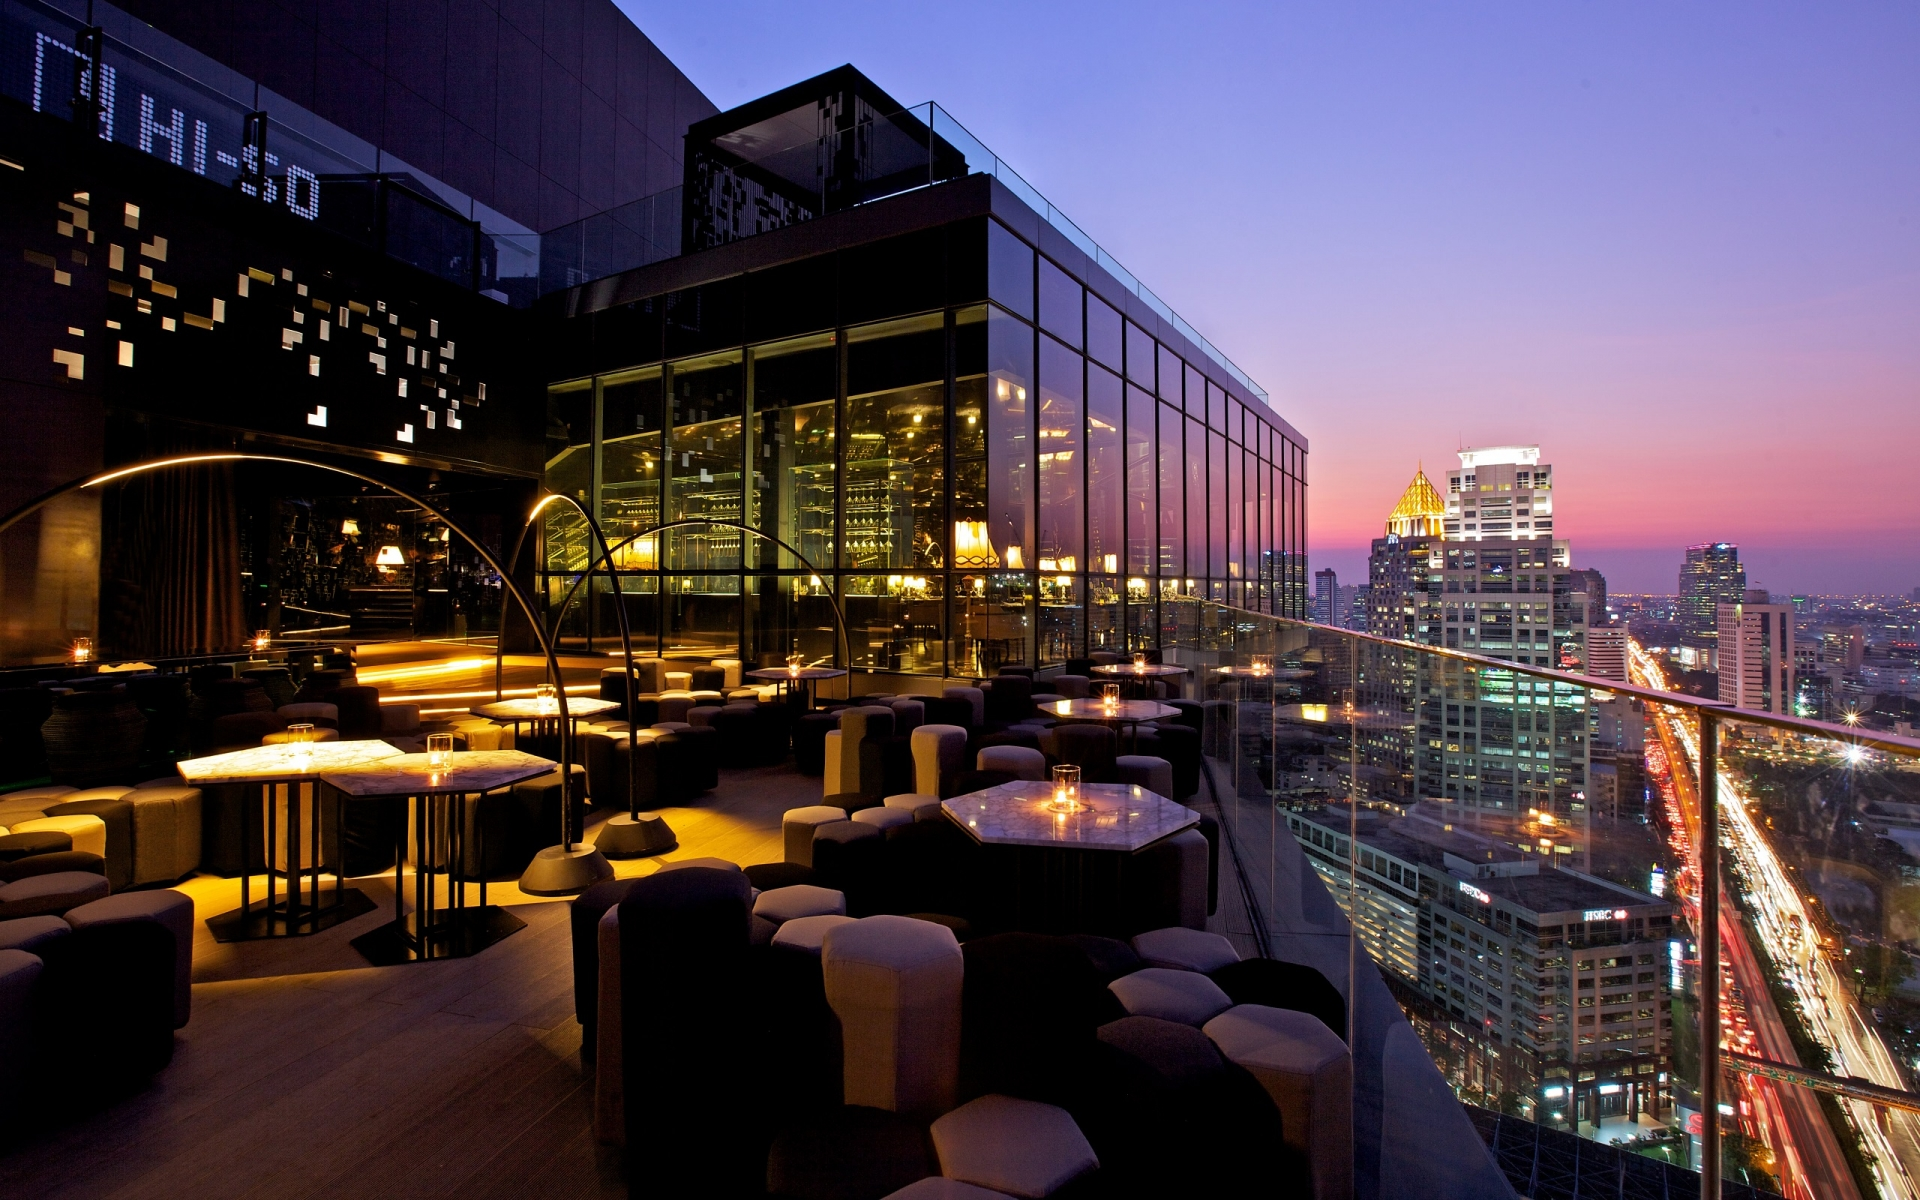 Sofitel SO Bangkok offers several choices for restaurants and bars within the hotel.